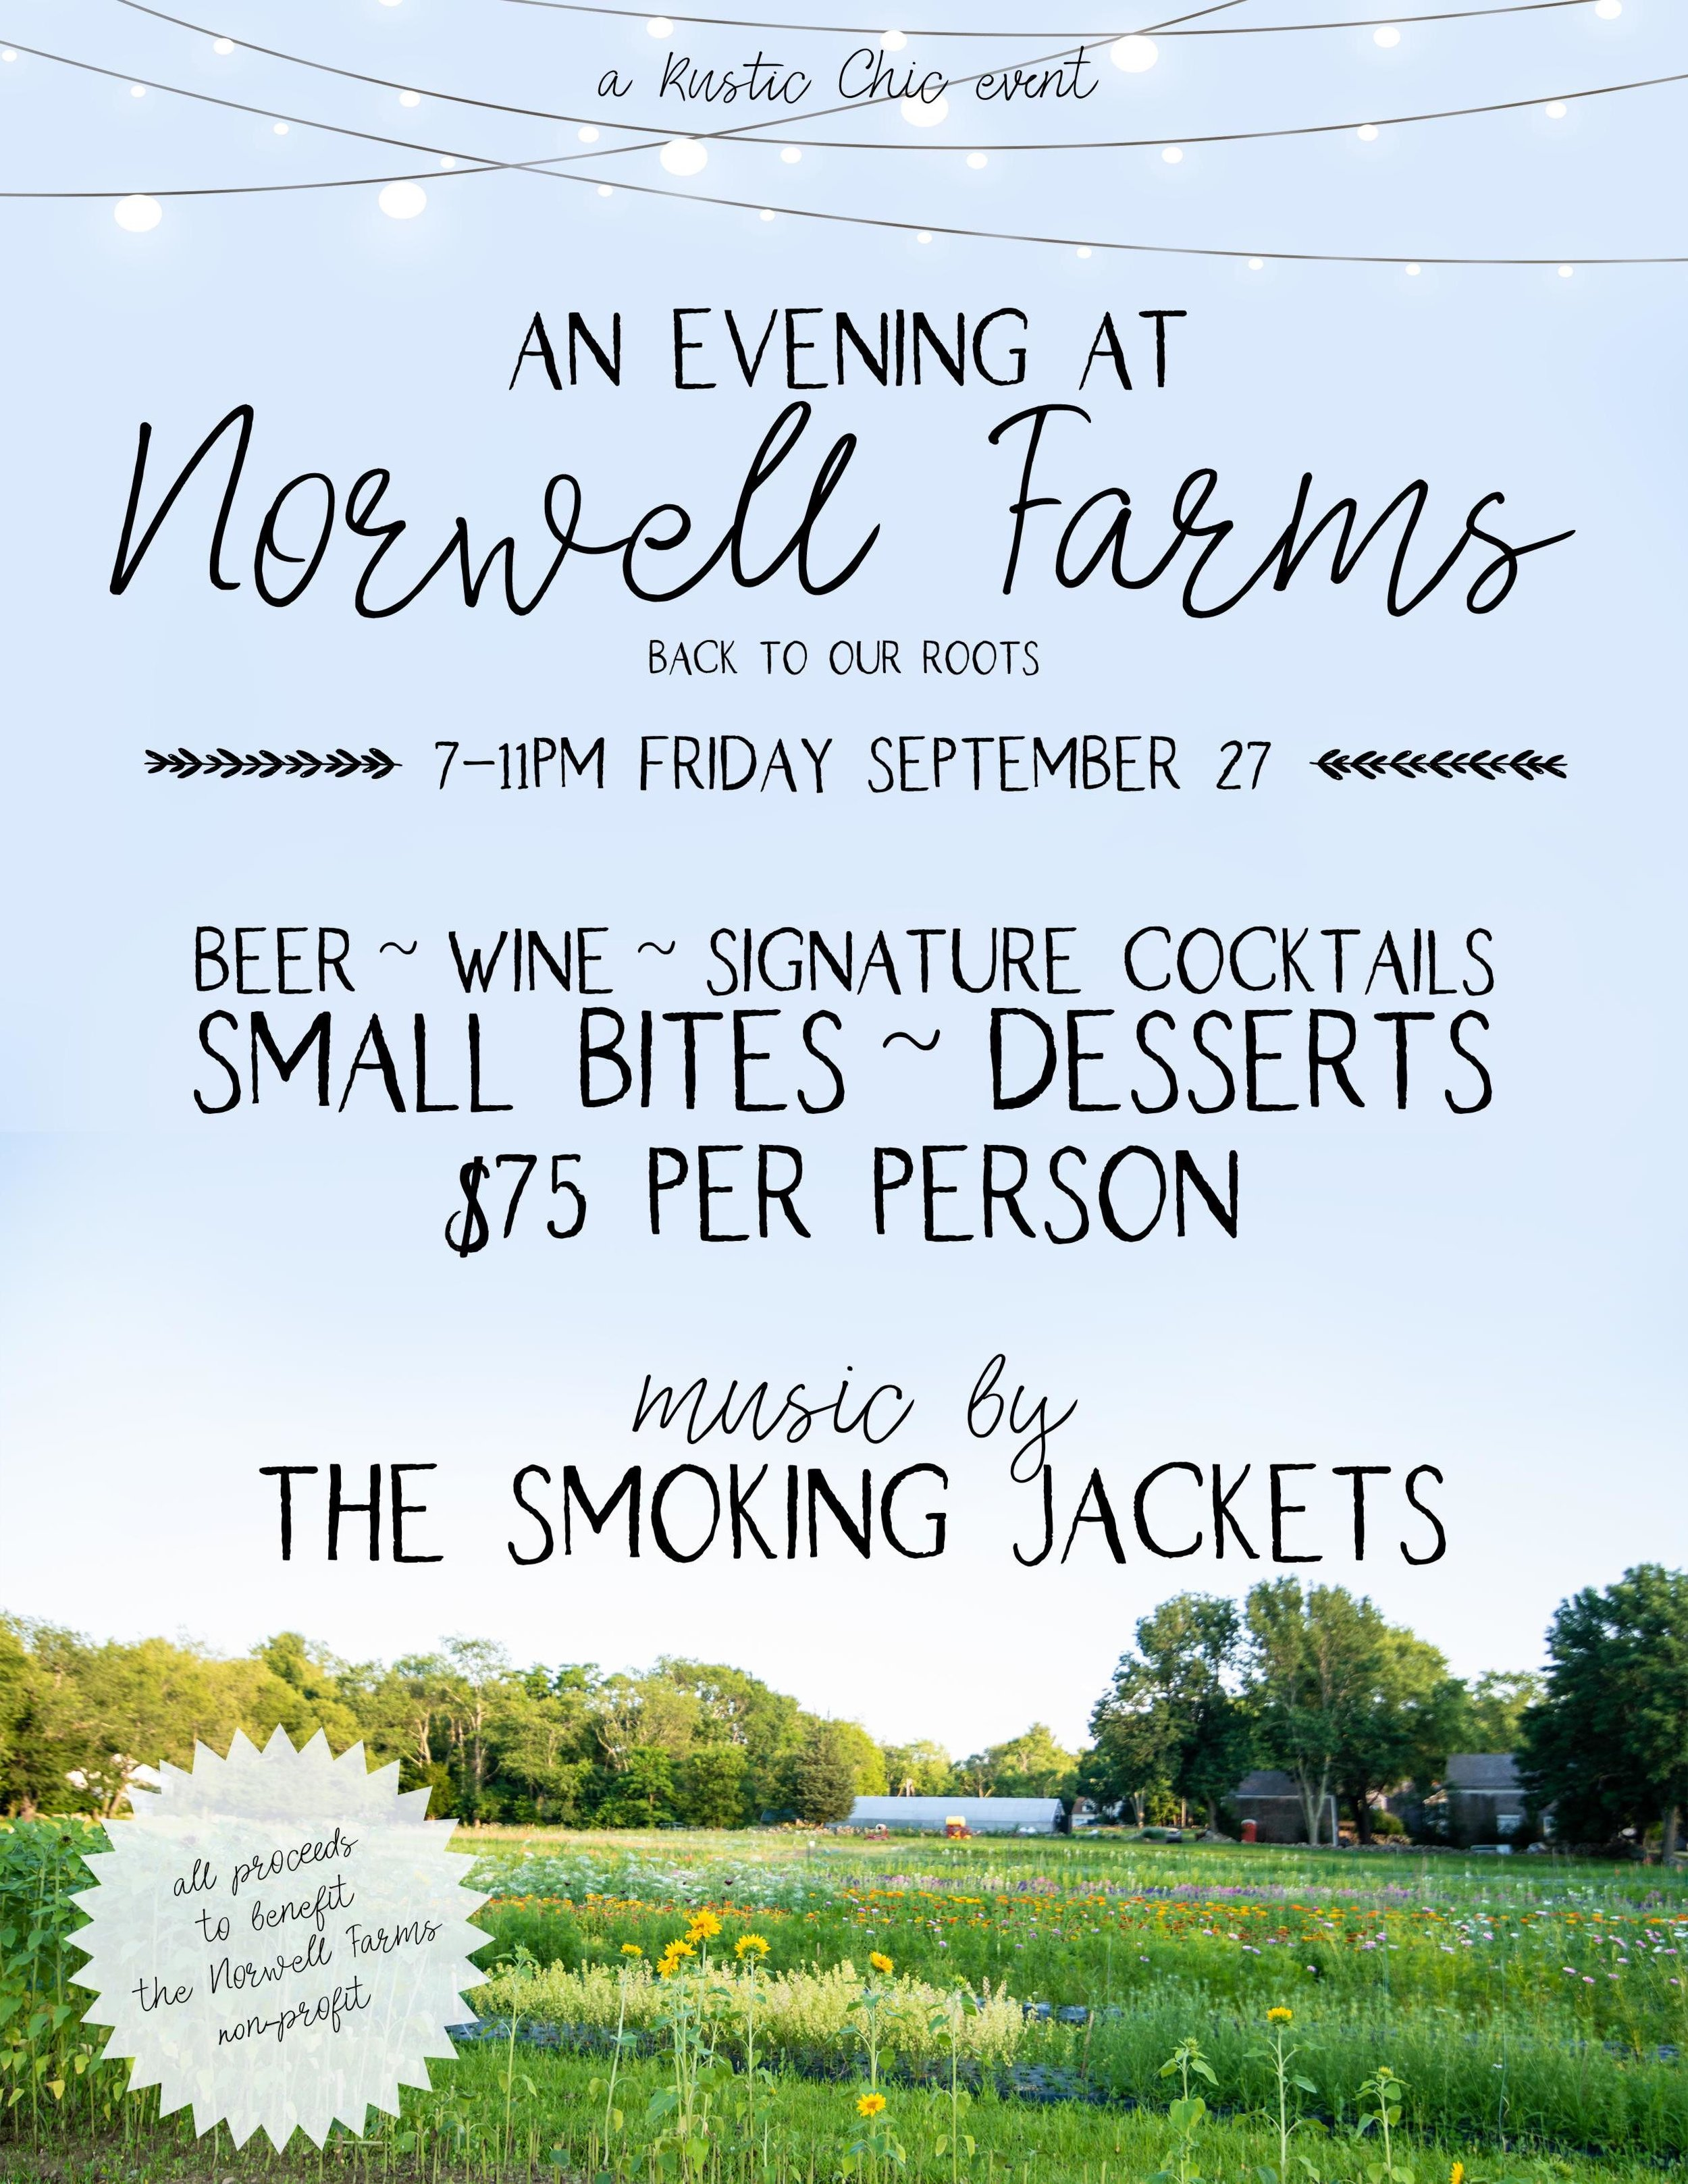 norwell farms 2019 flyer (1)-page-001.jpg